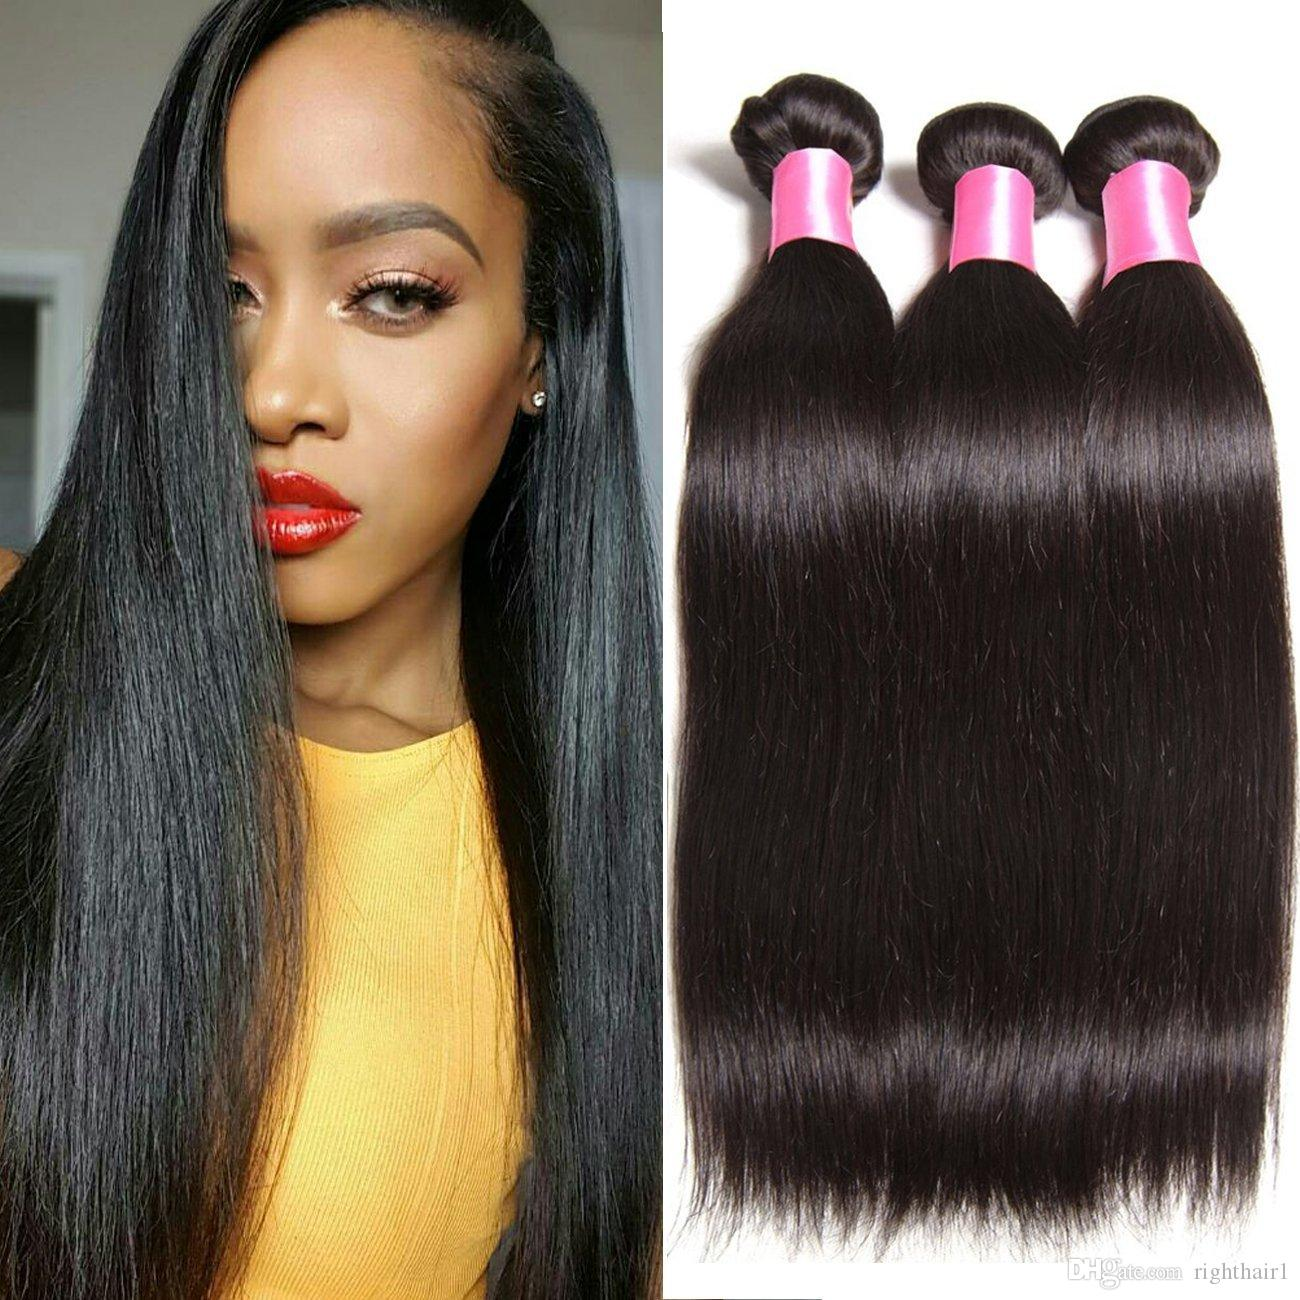 2018 6a brazilian virgin straight hair 3 bundles 12 12 12 inch 6a brazilian virgin straight hair 3 bundles 12 12 12 inch extension 100 unprocessed human hair weave extensions natural jet black pmusecretfo Gallery